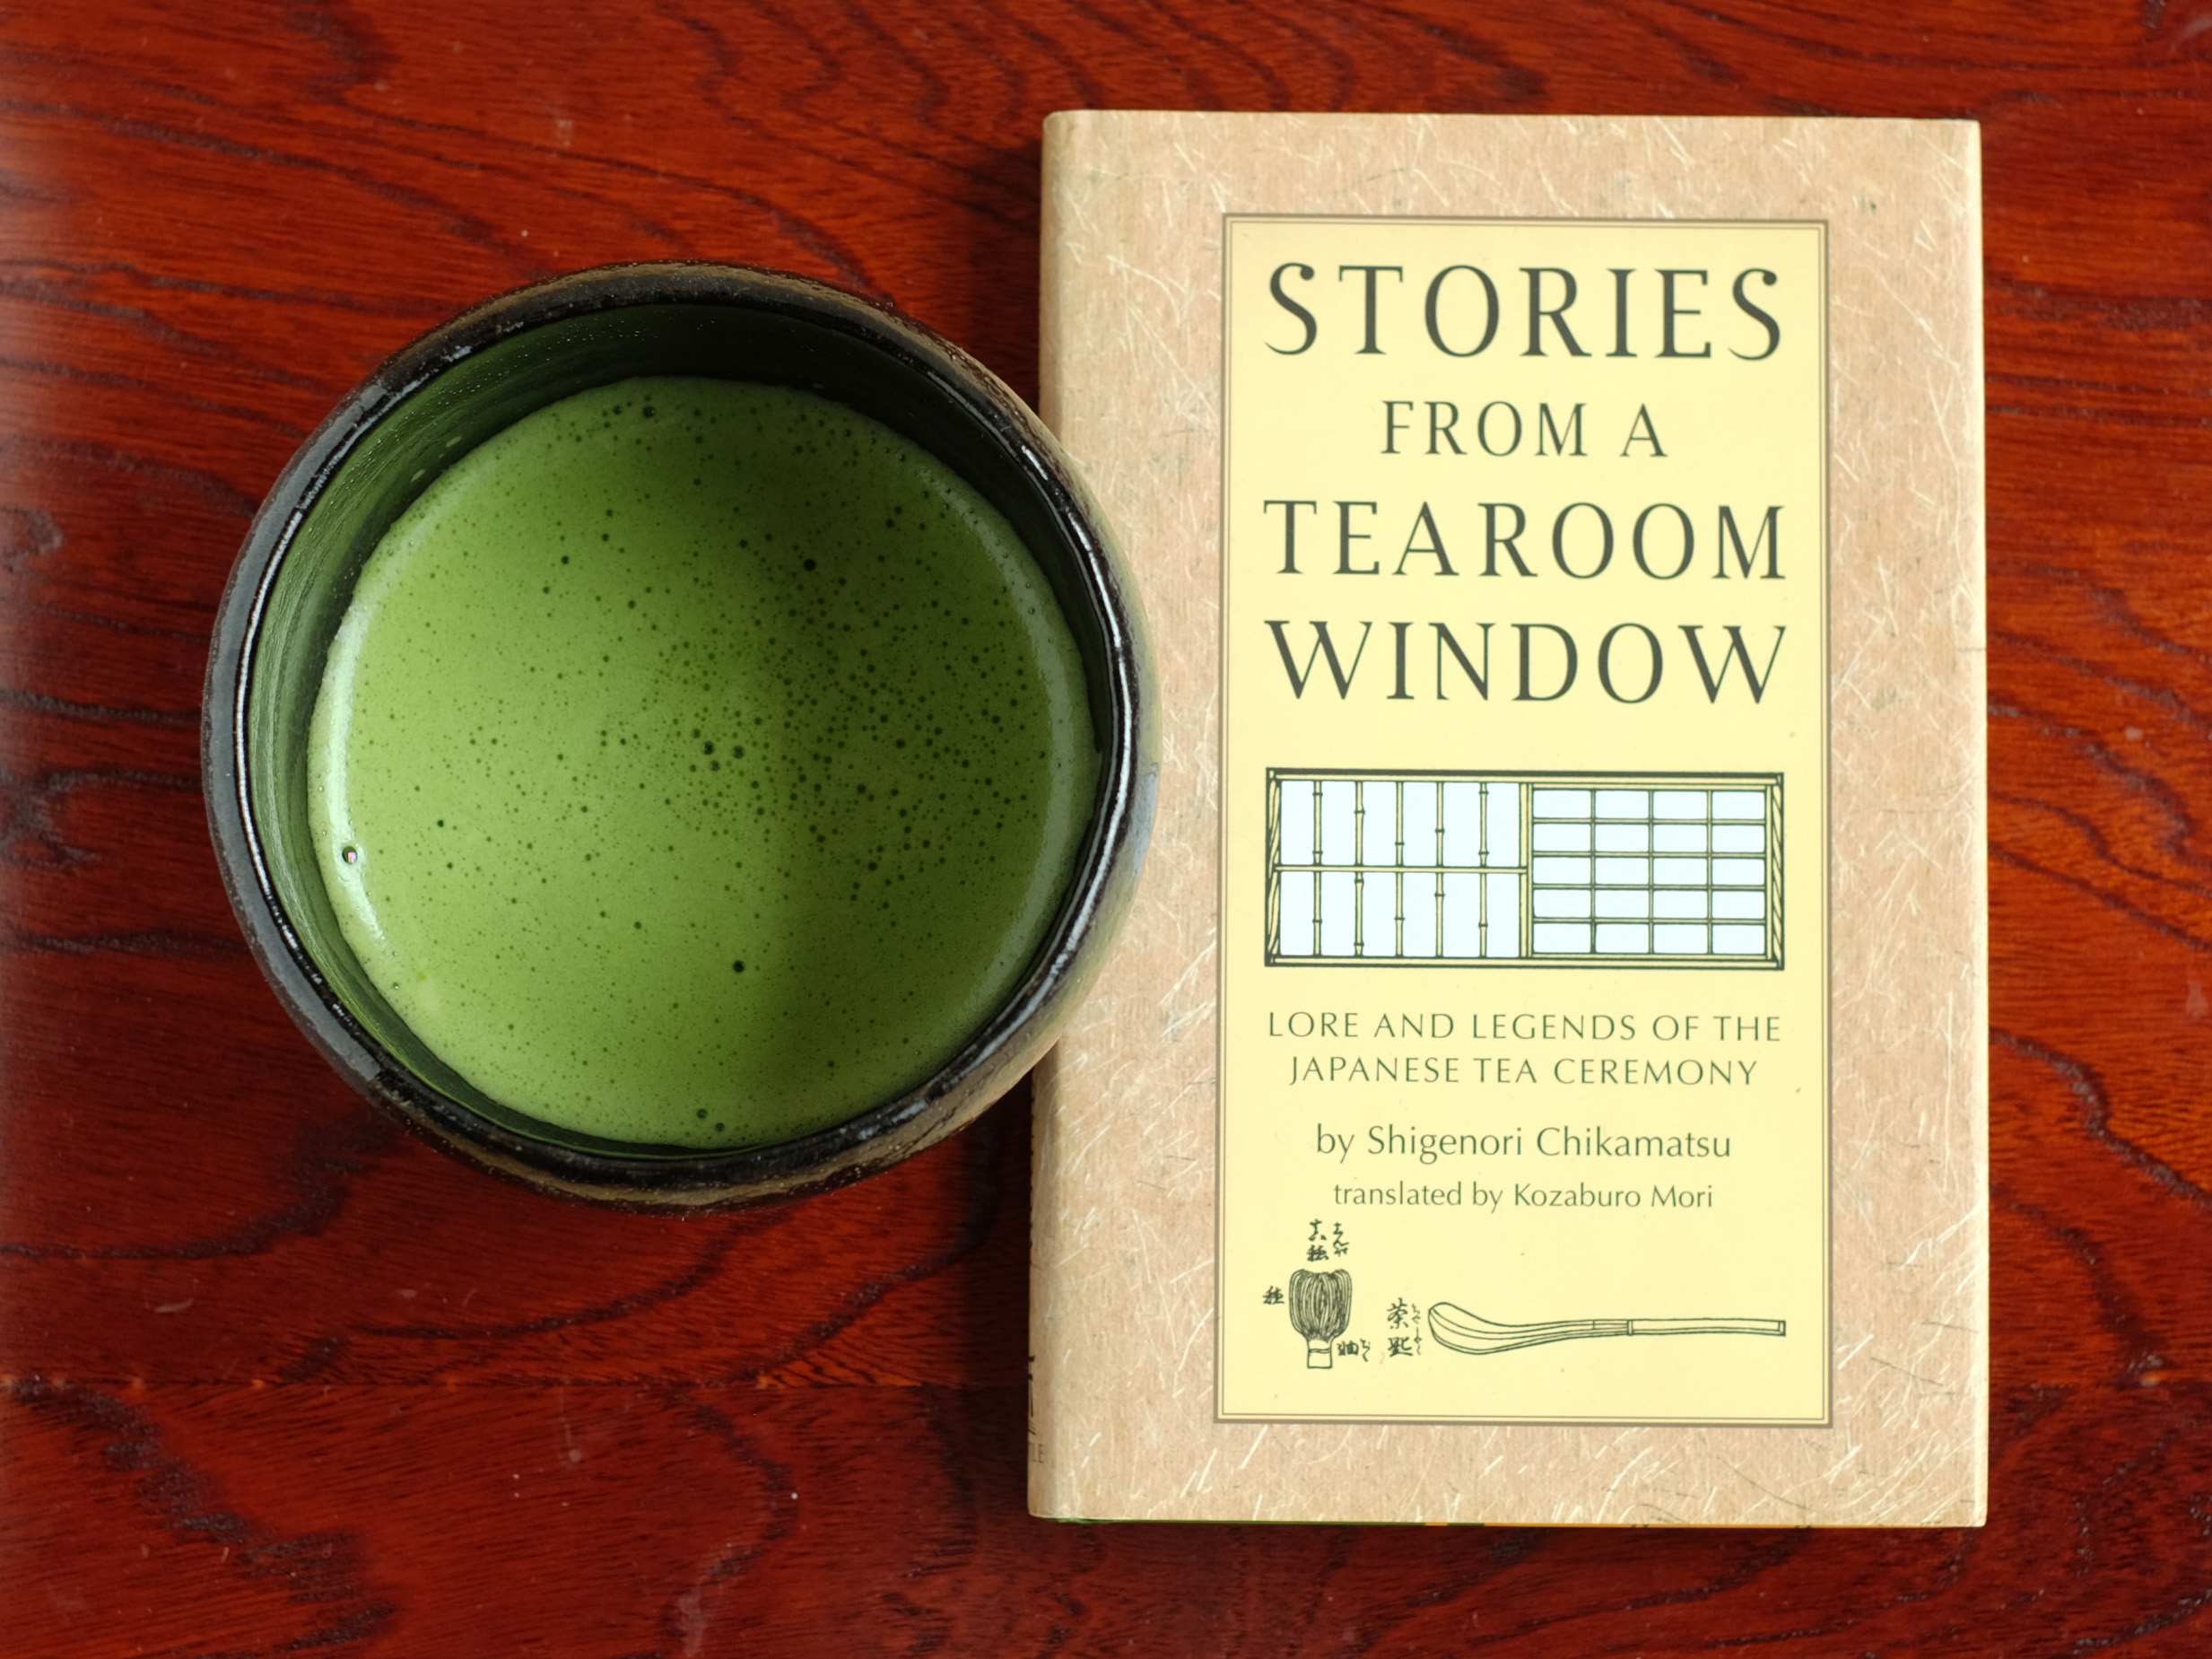 Stories from a tearoom window